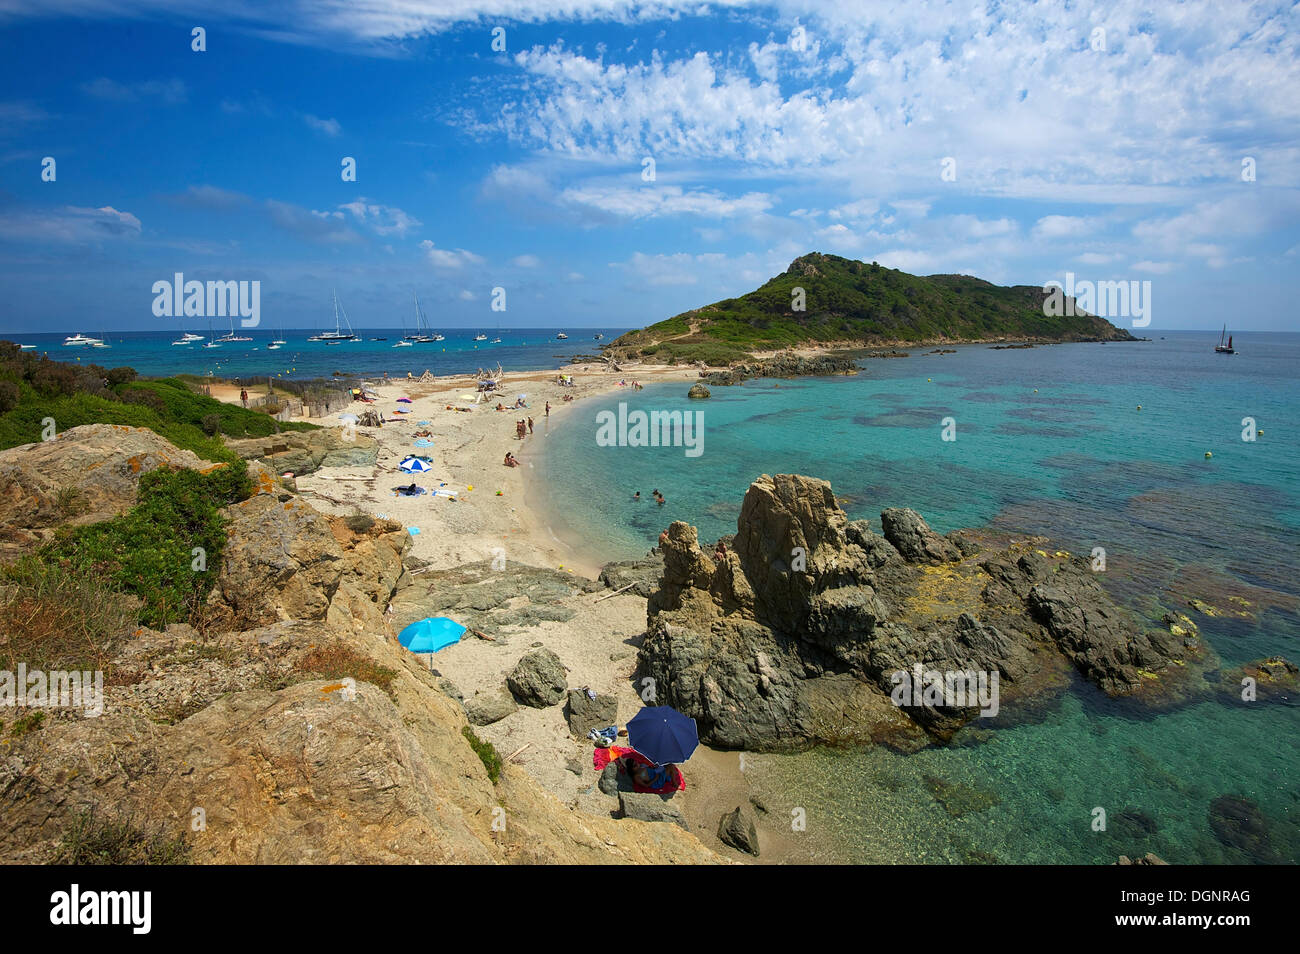 d27ca63fcd3 Cap Taillat Beach Stock Photos   Cap Taillat Beach Stock Images - Alamy